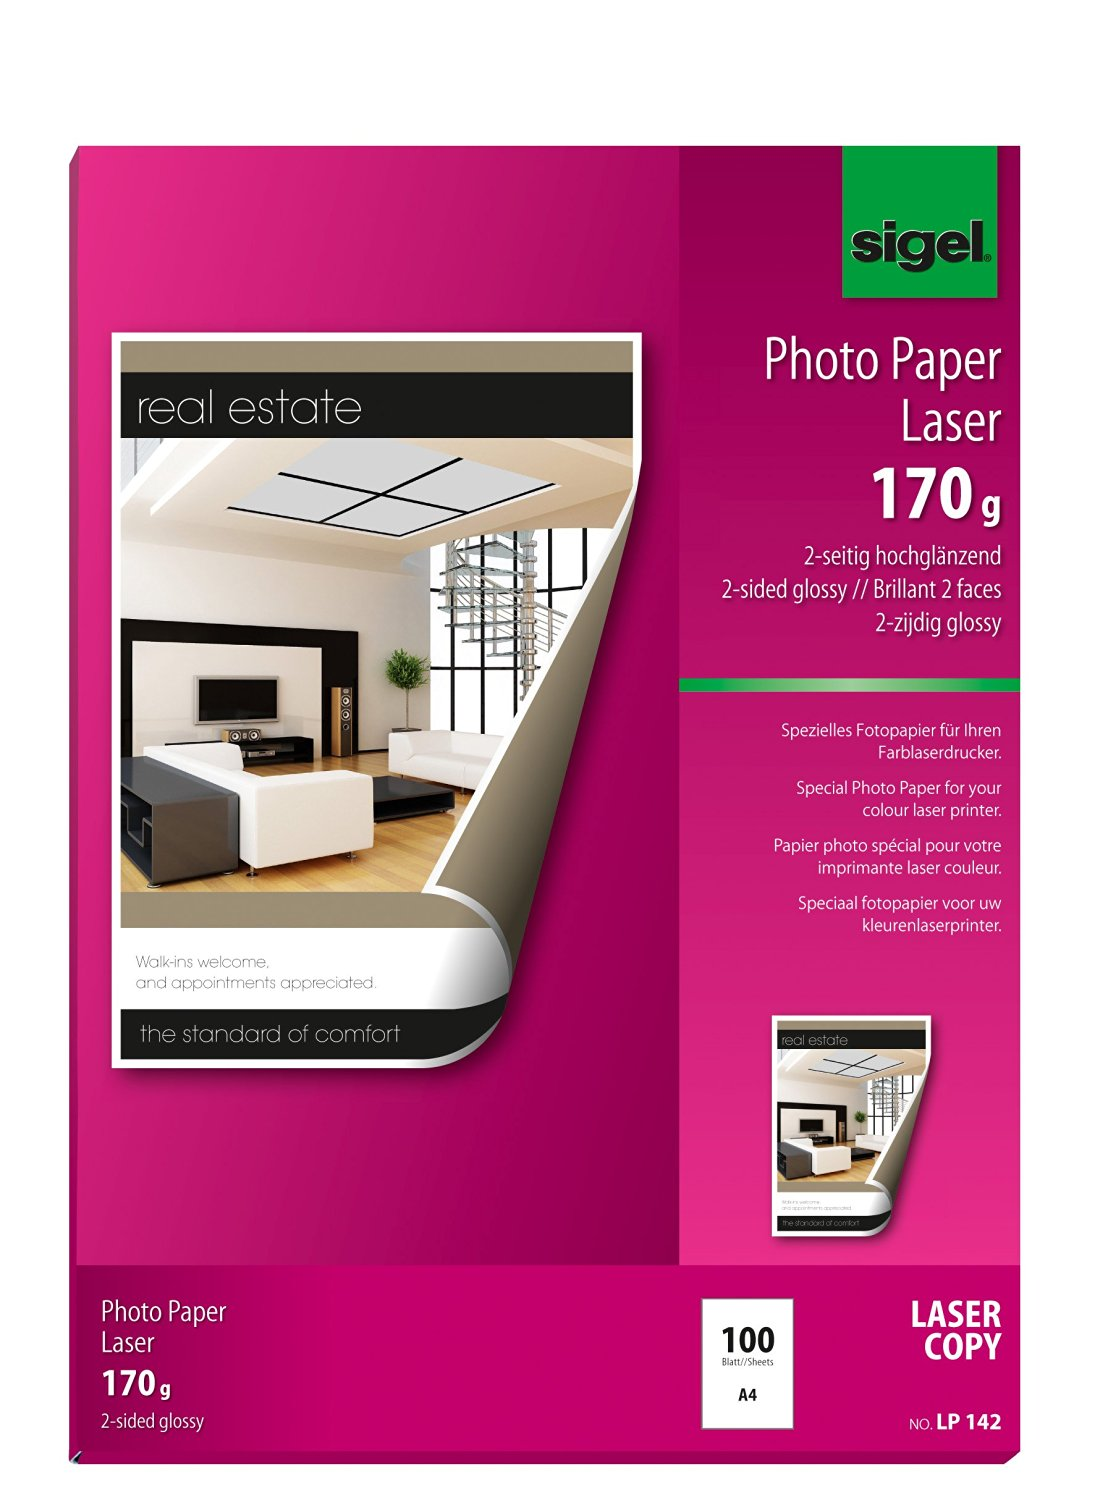 Sigel LP142 Photo Paper for Colour Laser/Copier, 2-sided glossy, 114.9 lbs, A4, 100 sheets